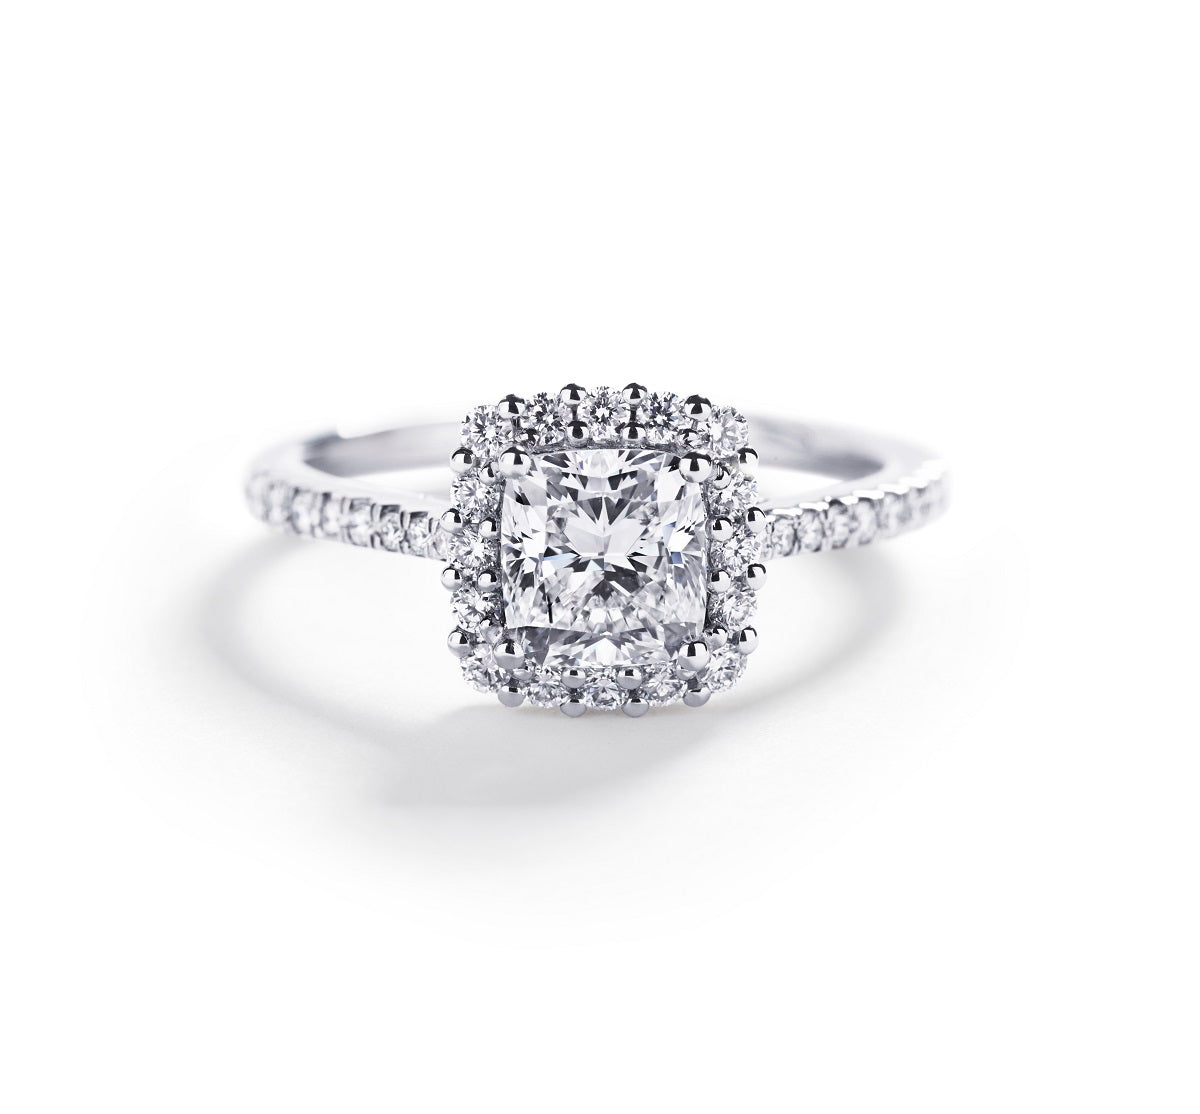 Rosetring med 1,01 ct. cushion-cut diamant